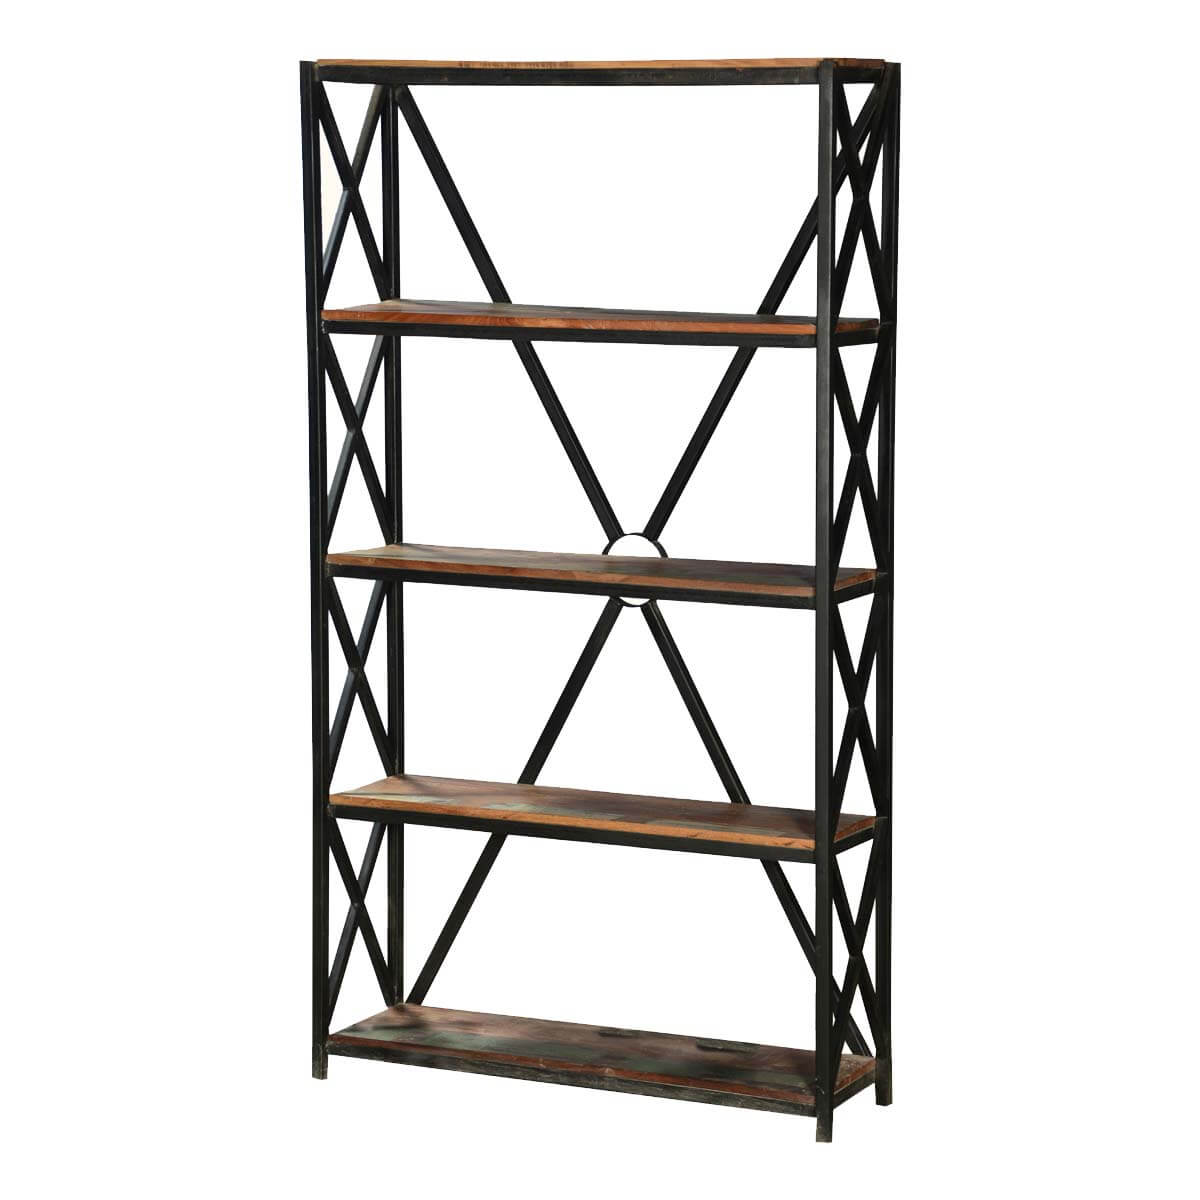 Worland 4 Open Shelf Industrial Rustic Reclaimed Wood Etagere Bookcase